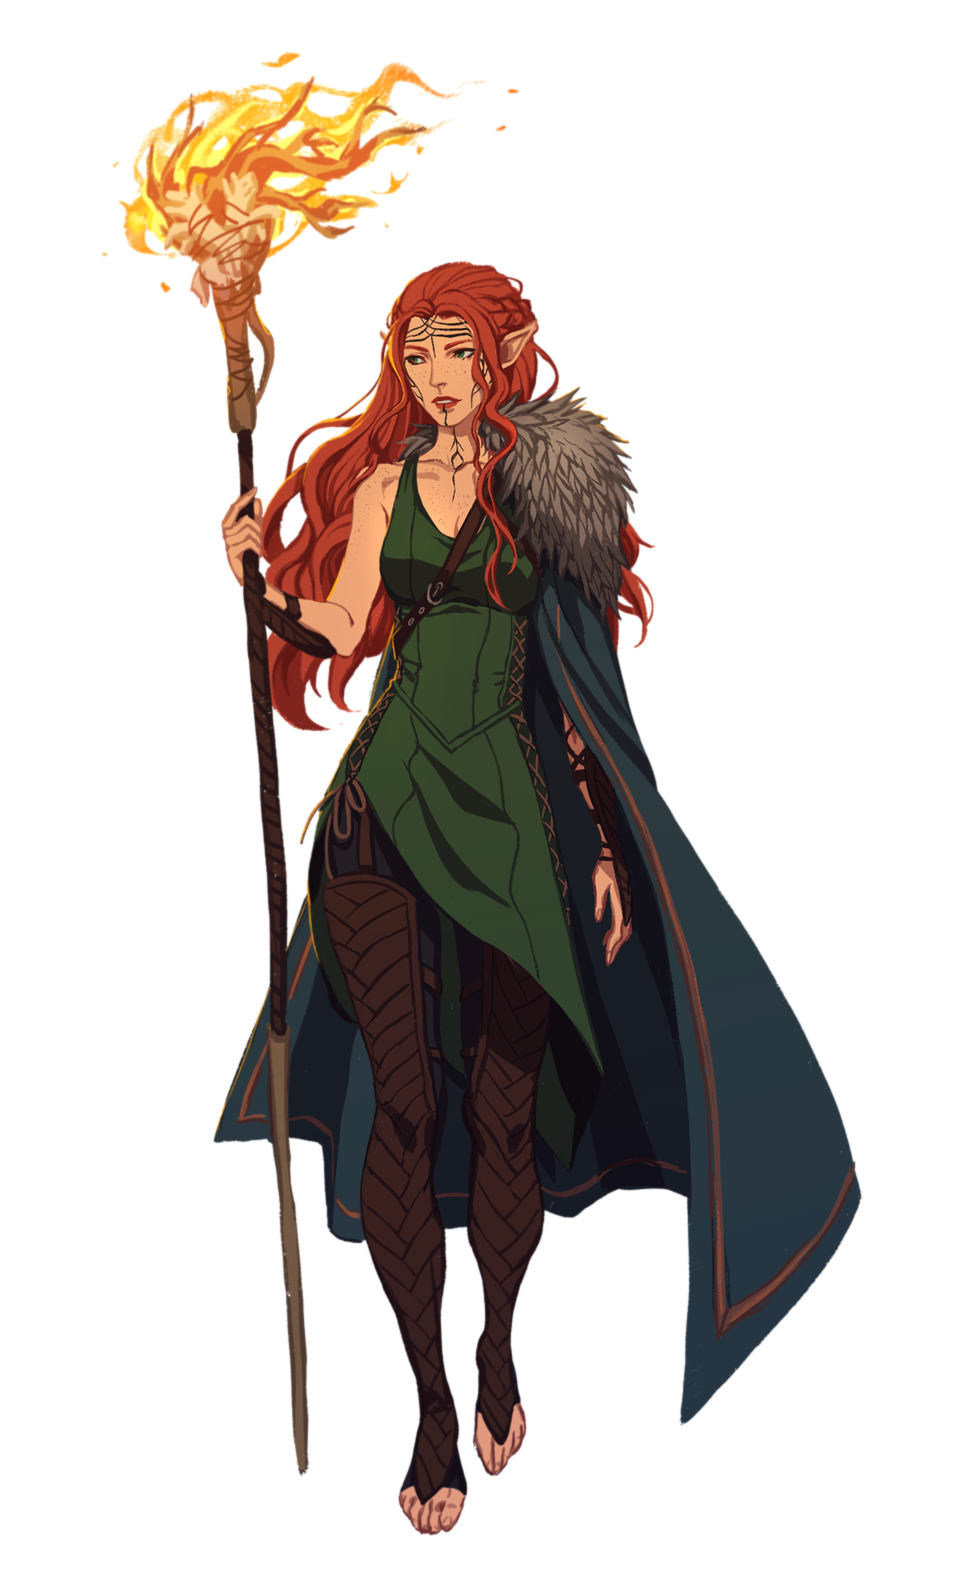 Character Design Dnd : Female elf sorcerer with staff pathfinder pfrpg dnd d